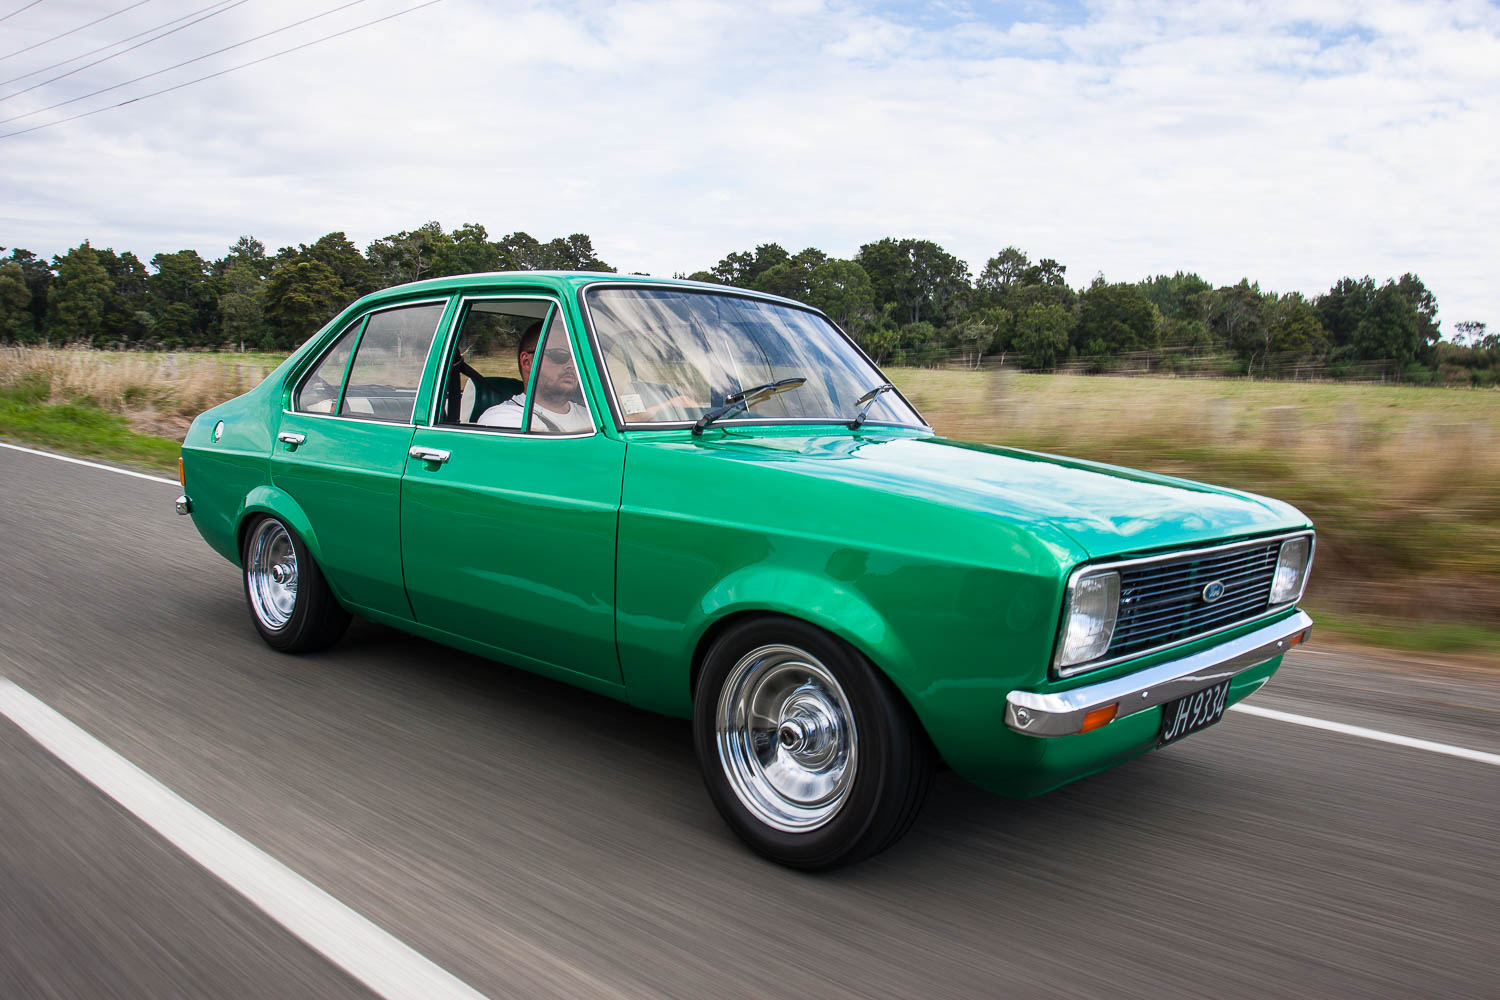 King of tough street: a show-condition Escort like no other — The ...